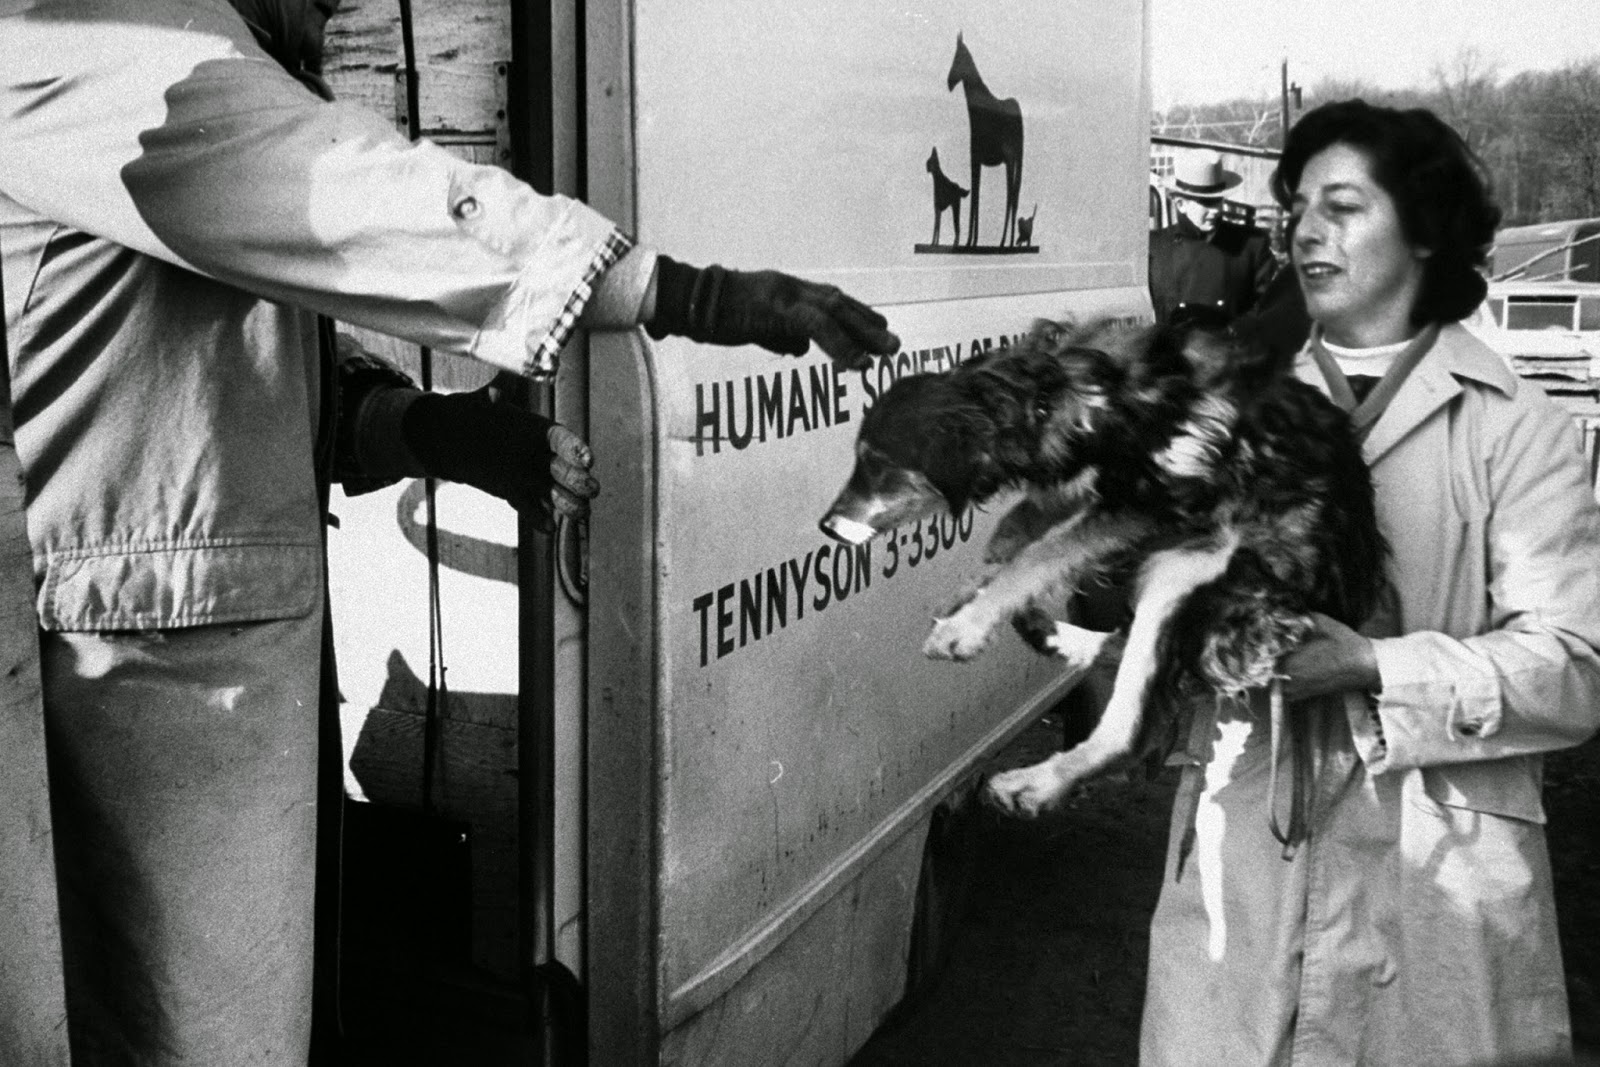 Contact concentration camps for animals 72